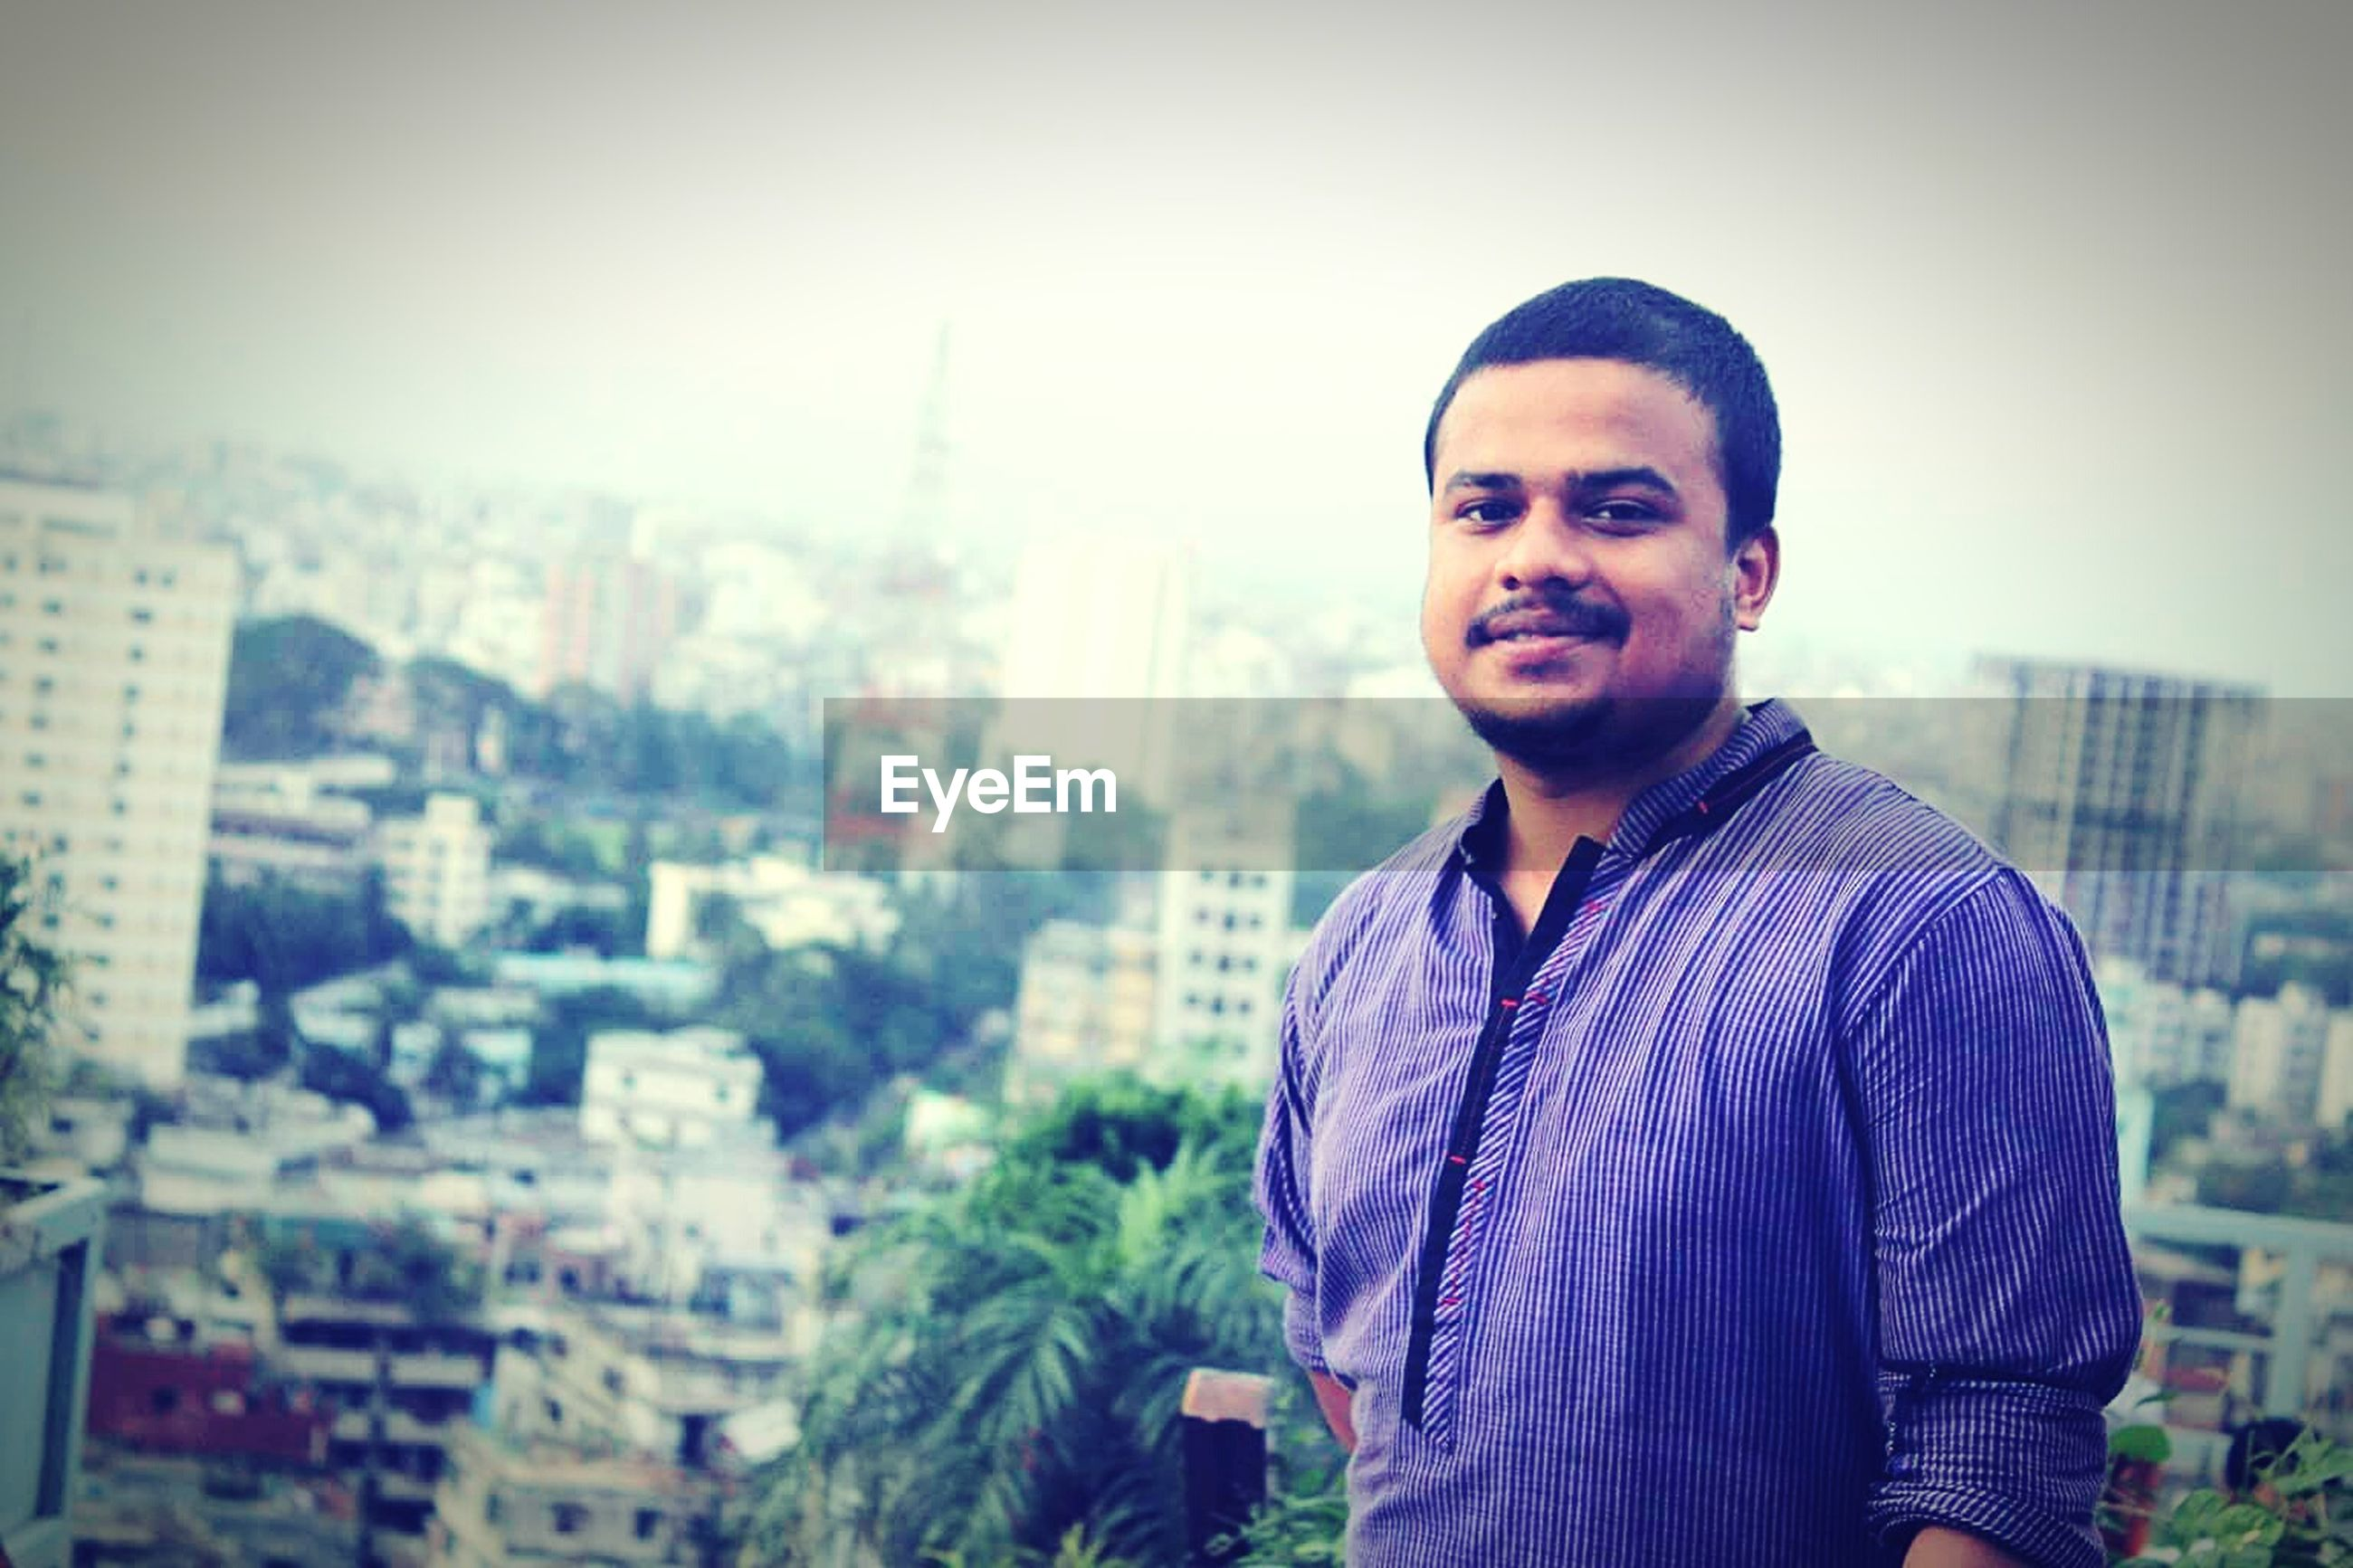 smiling, portrait, one person, city, cityscape, real people, outdoors, human, one man only, day, young adult, people, adult